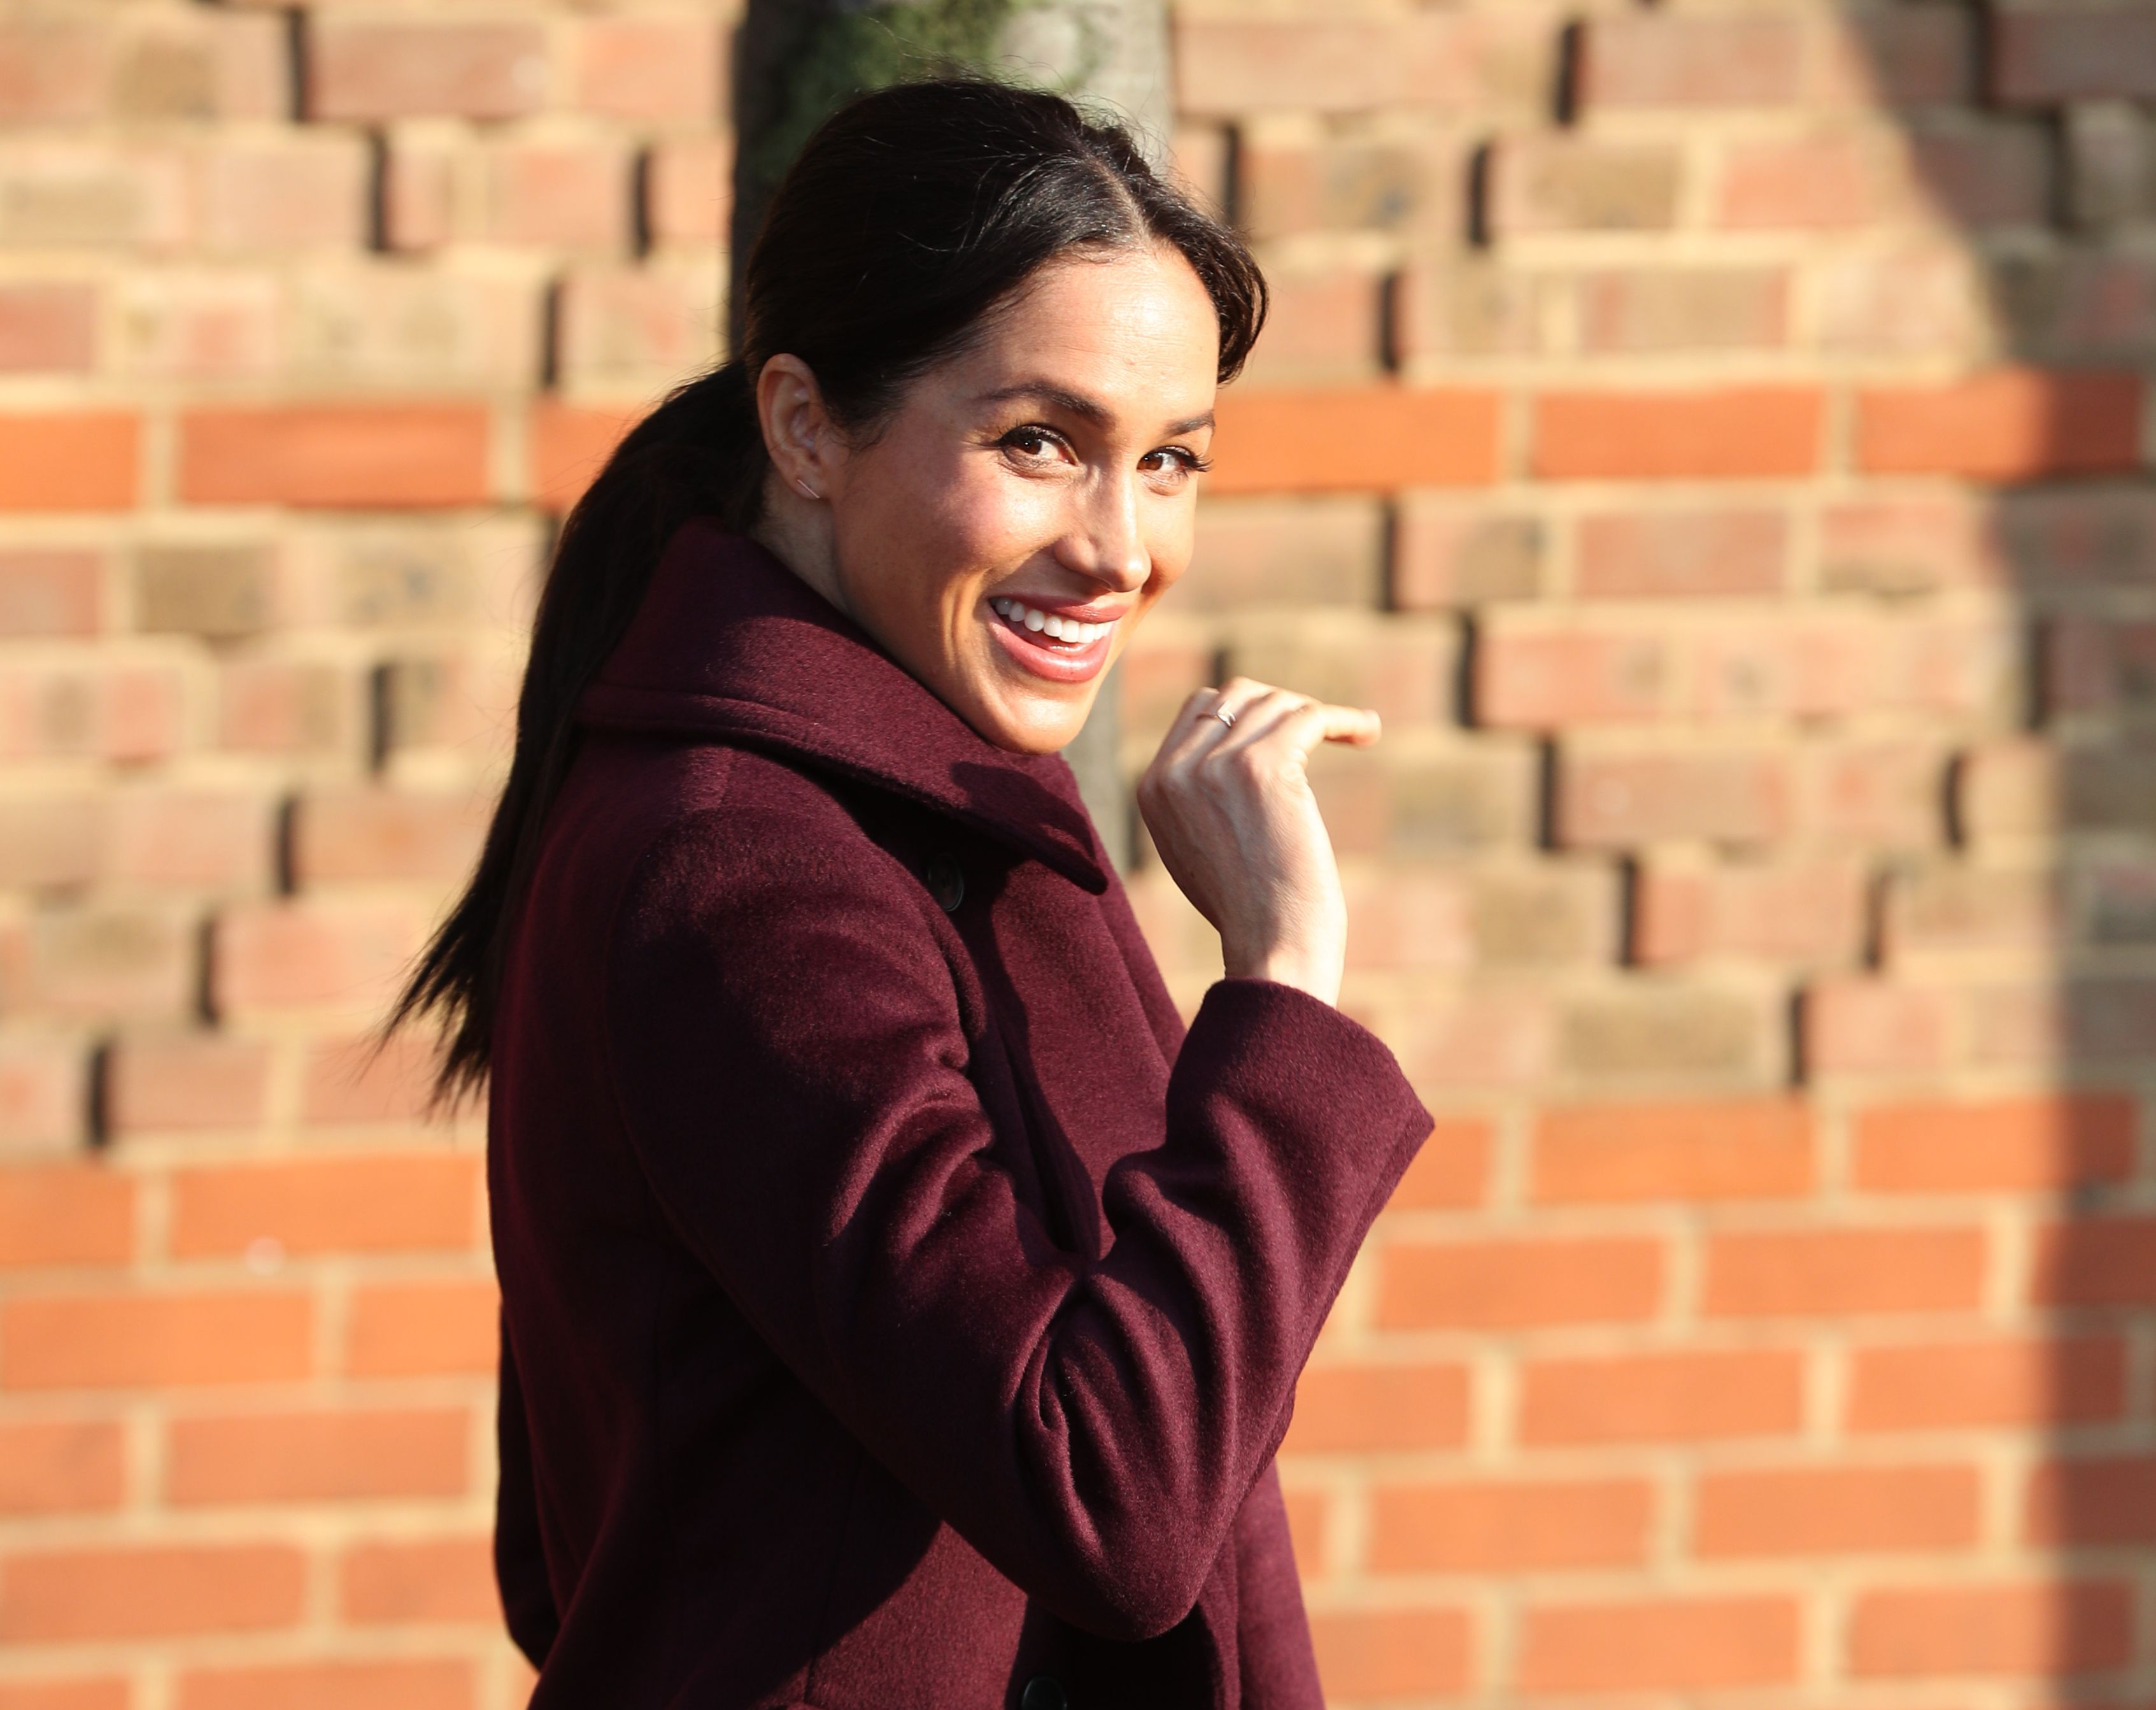 We'll Probably See Meghan Markle Again Much Sooner Than You Think